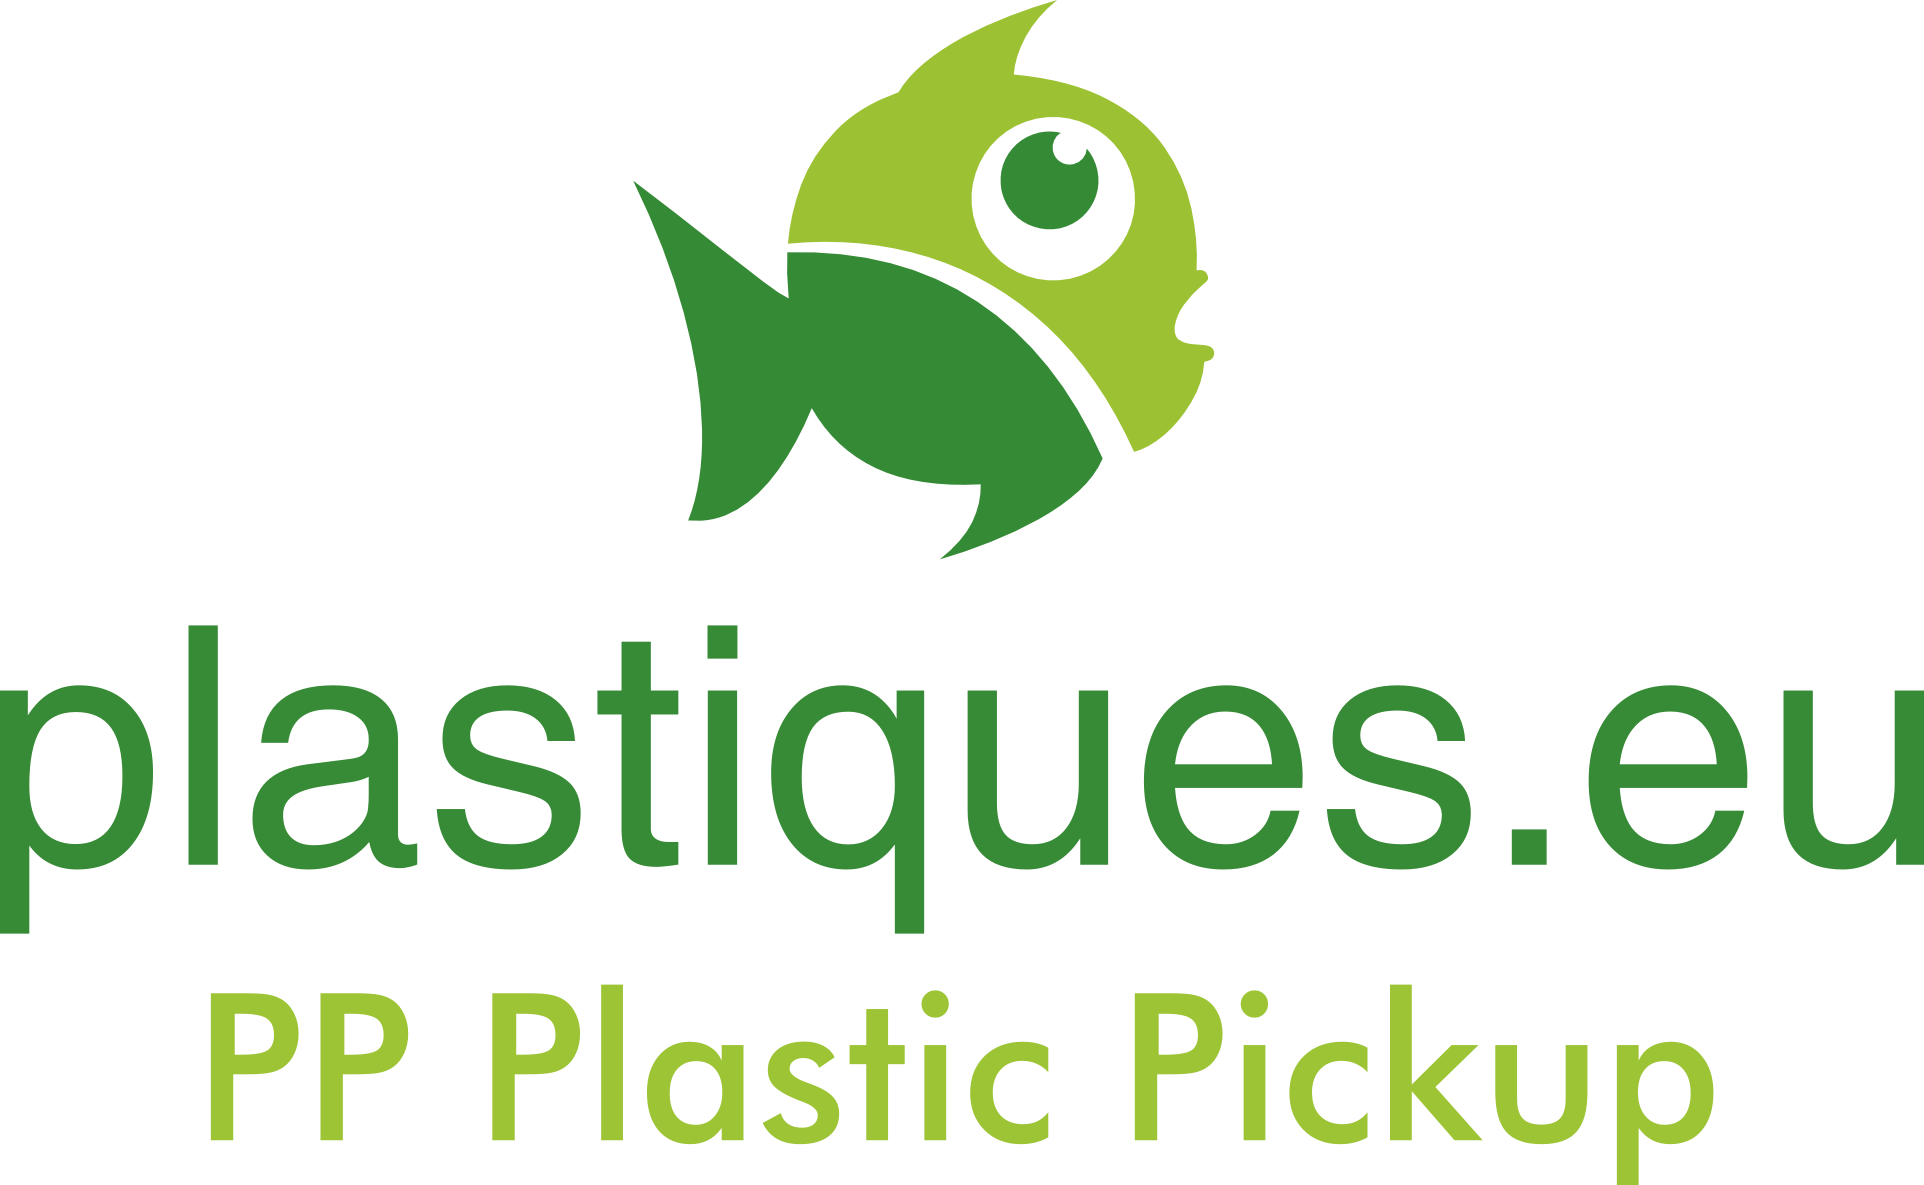 pp-plasticpickup.png